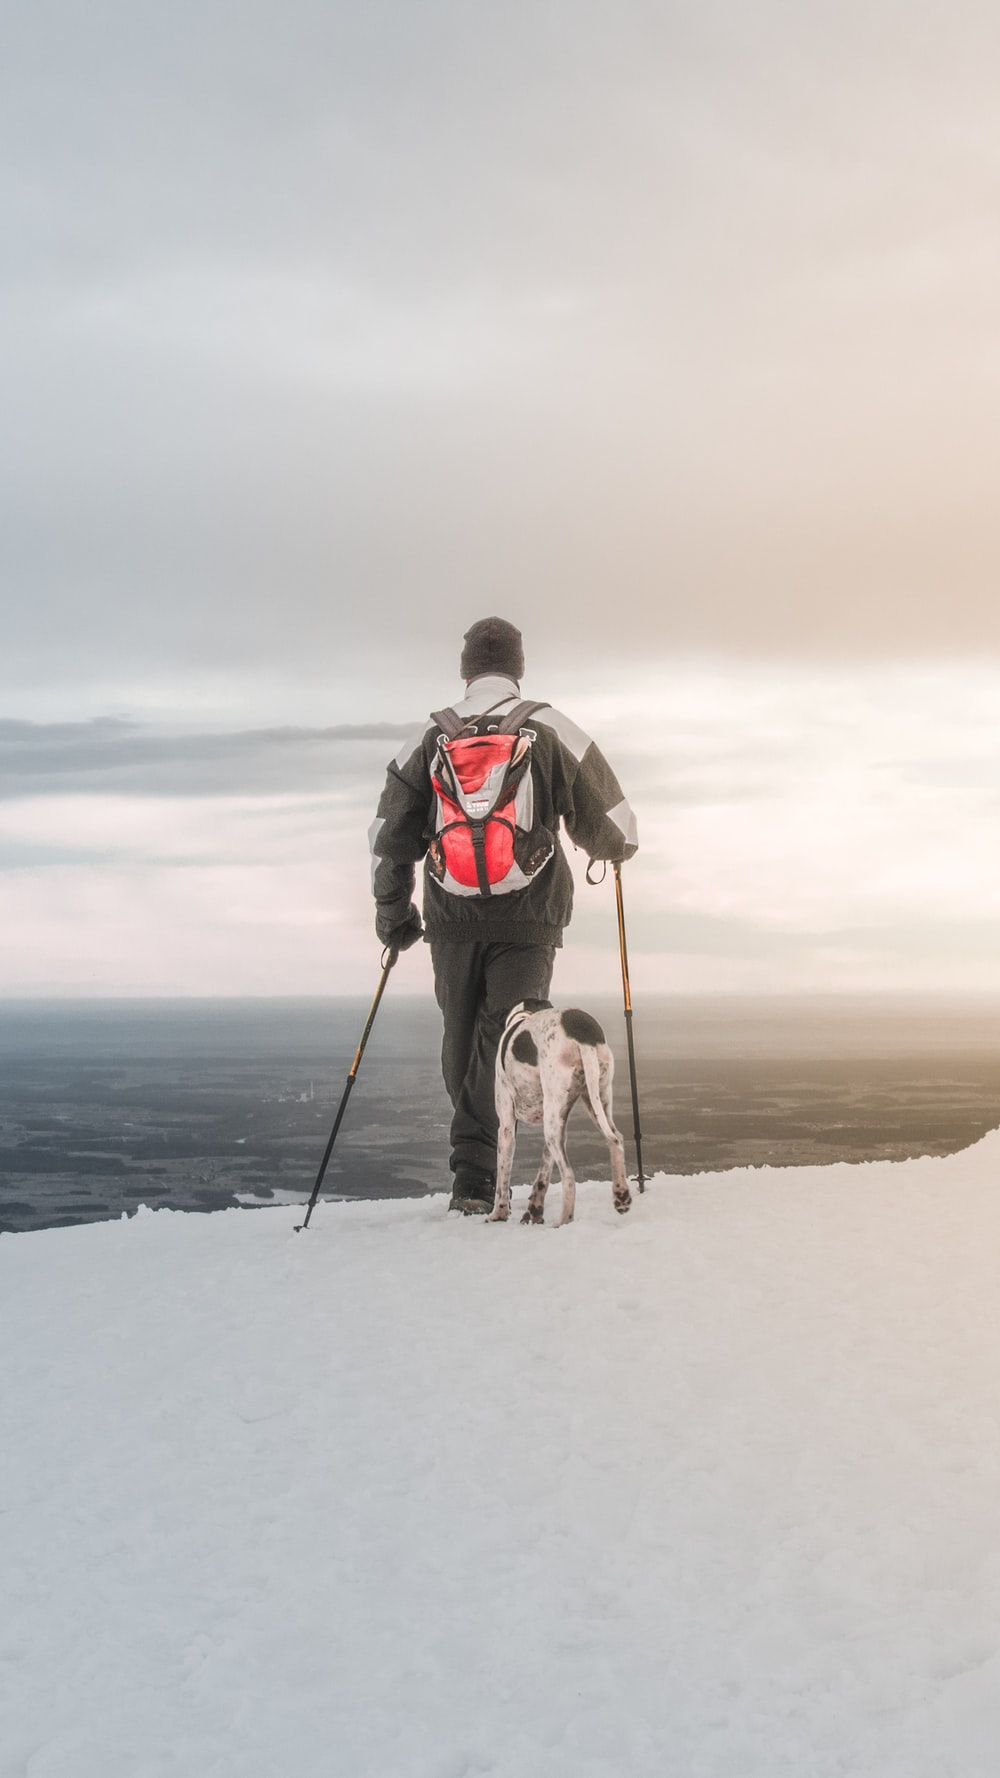 man hiking on frozen ground with dog